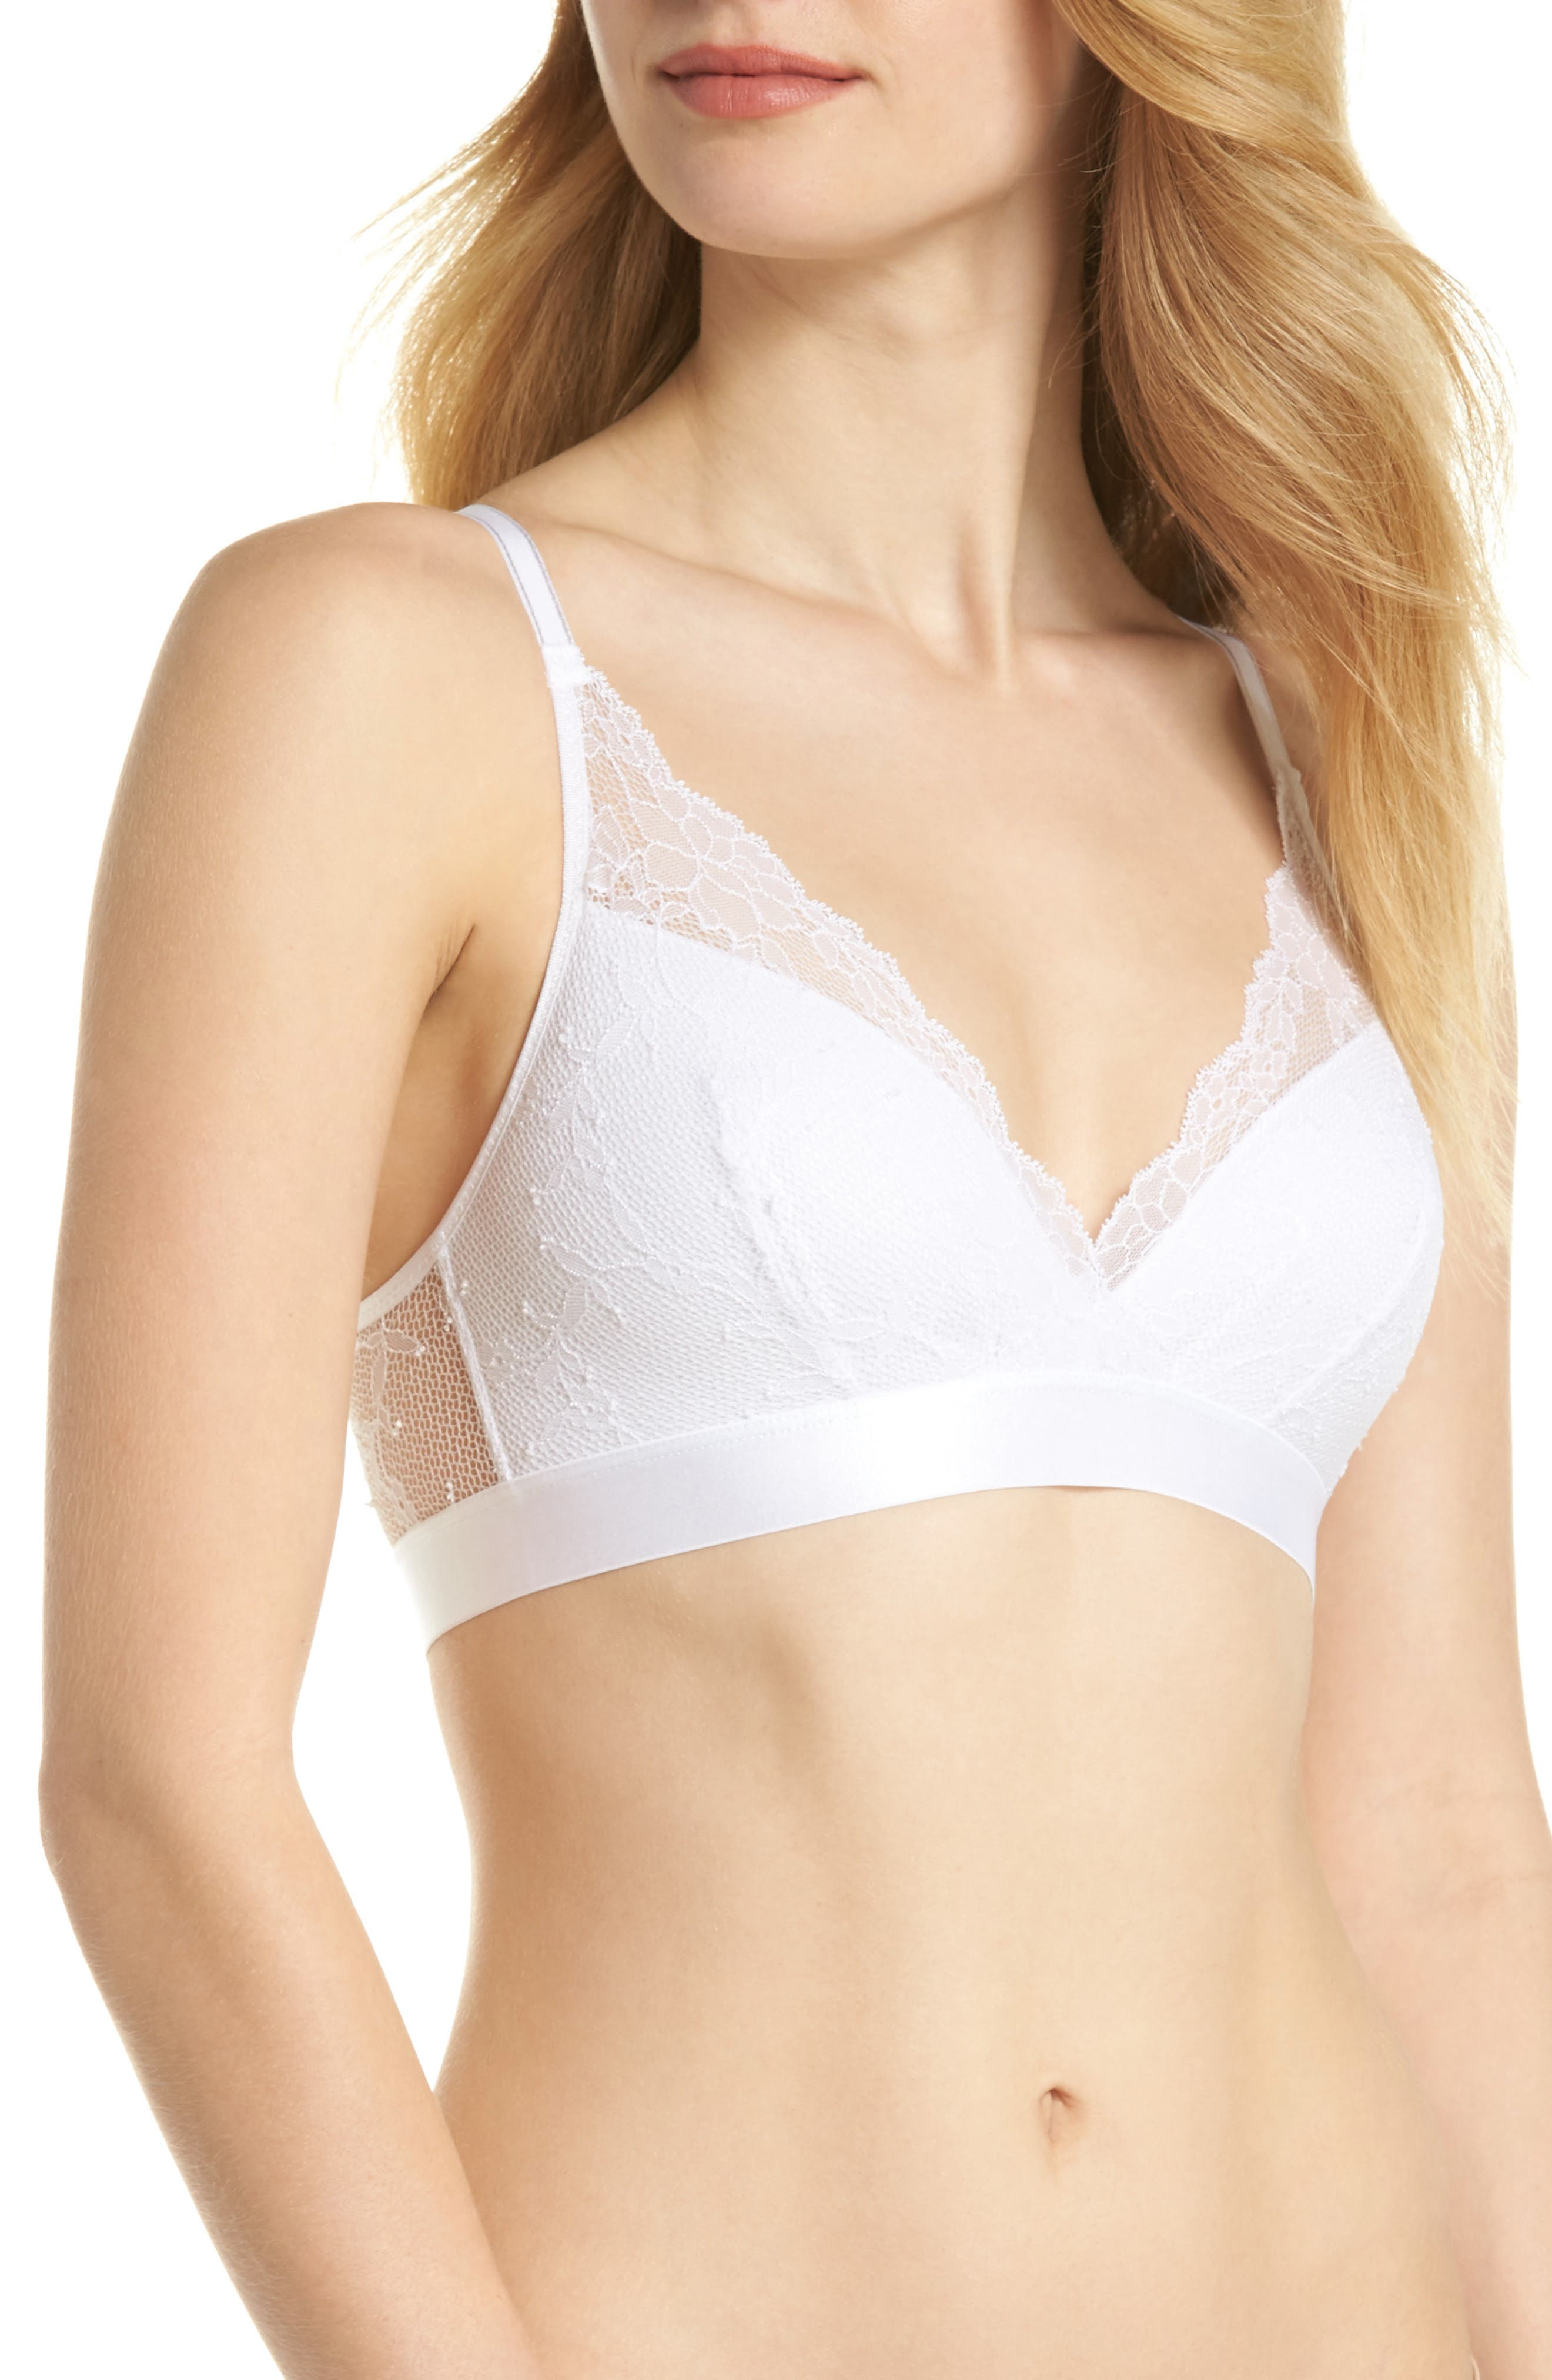 Alternate Image 1 Selected - Chantelle Intimates Everyday Lace Racerback Bralette